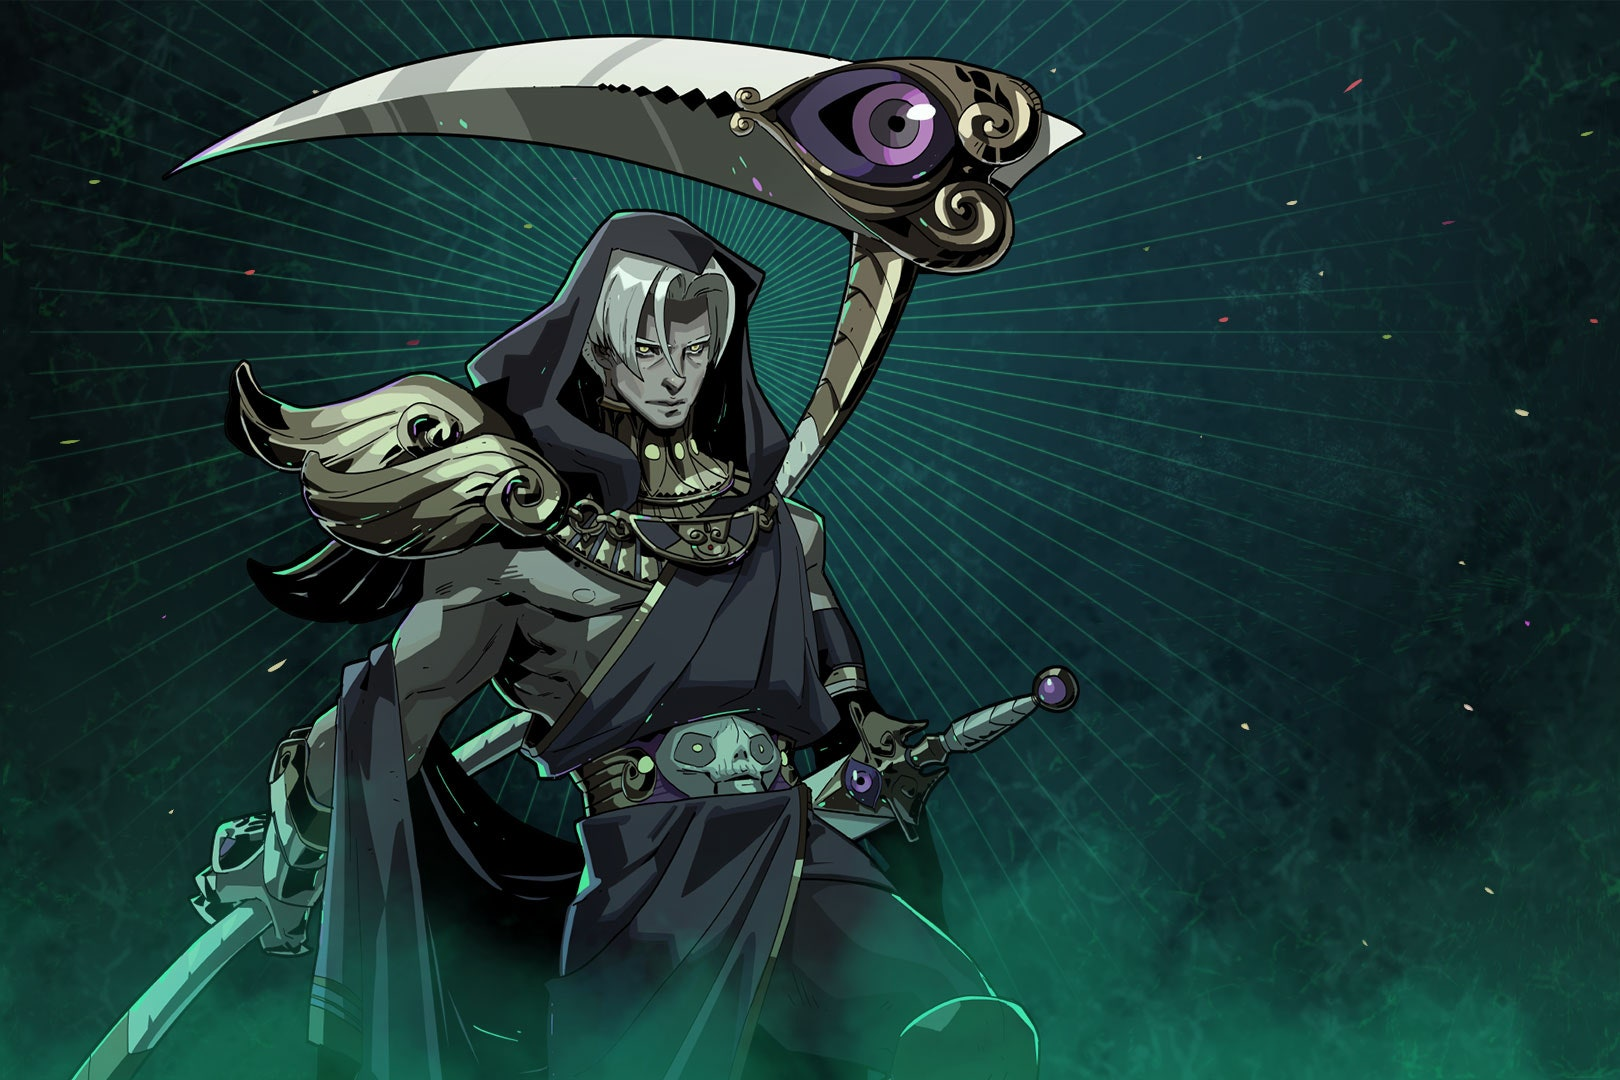 An image of Thanatos, from the game Hades